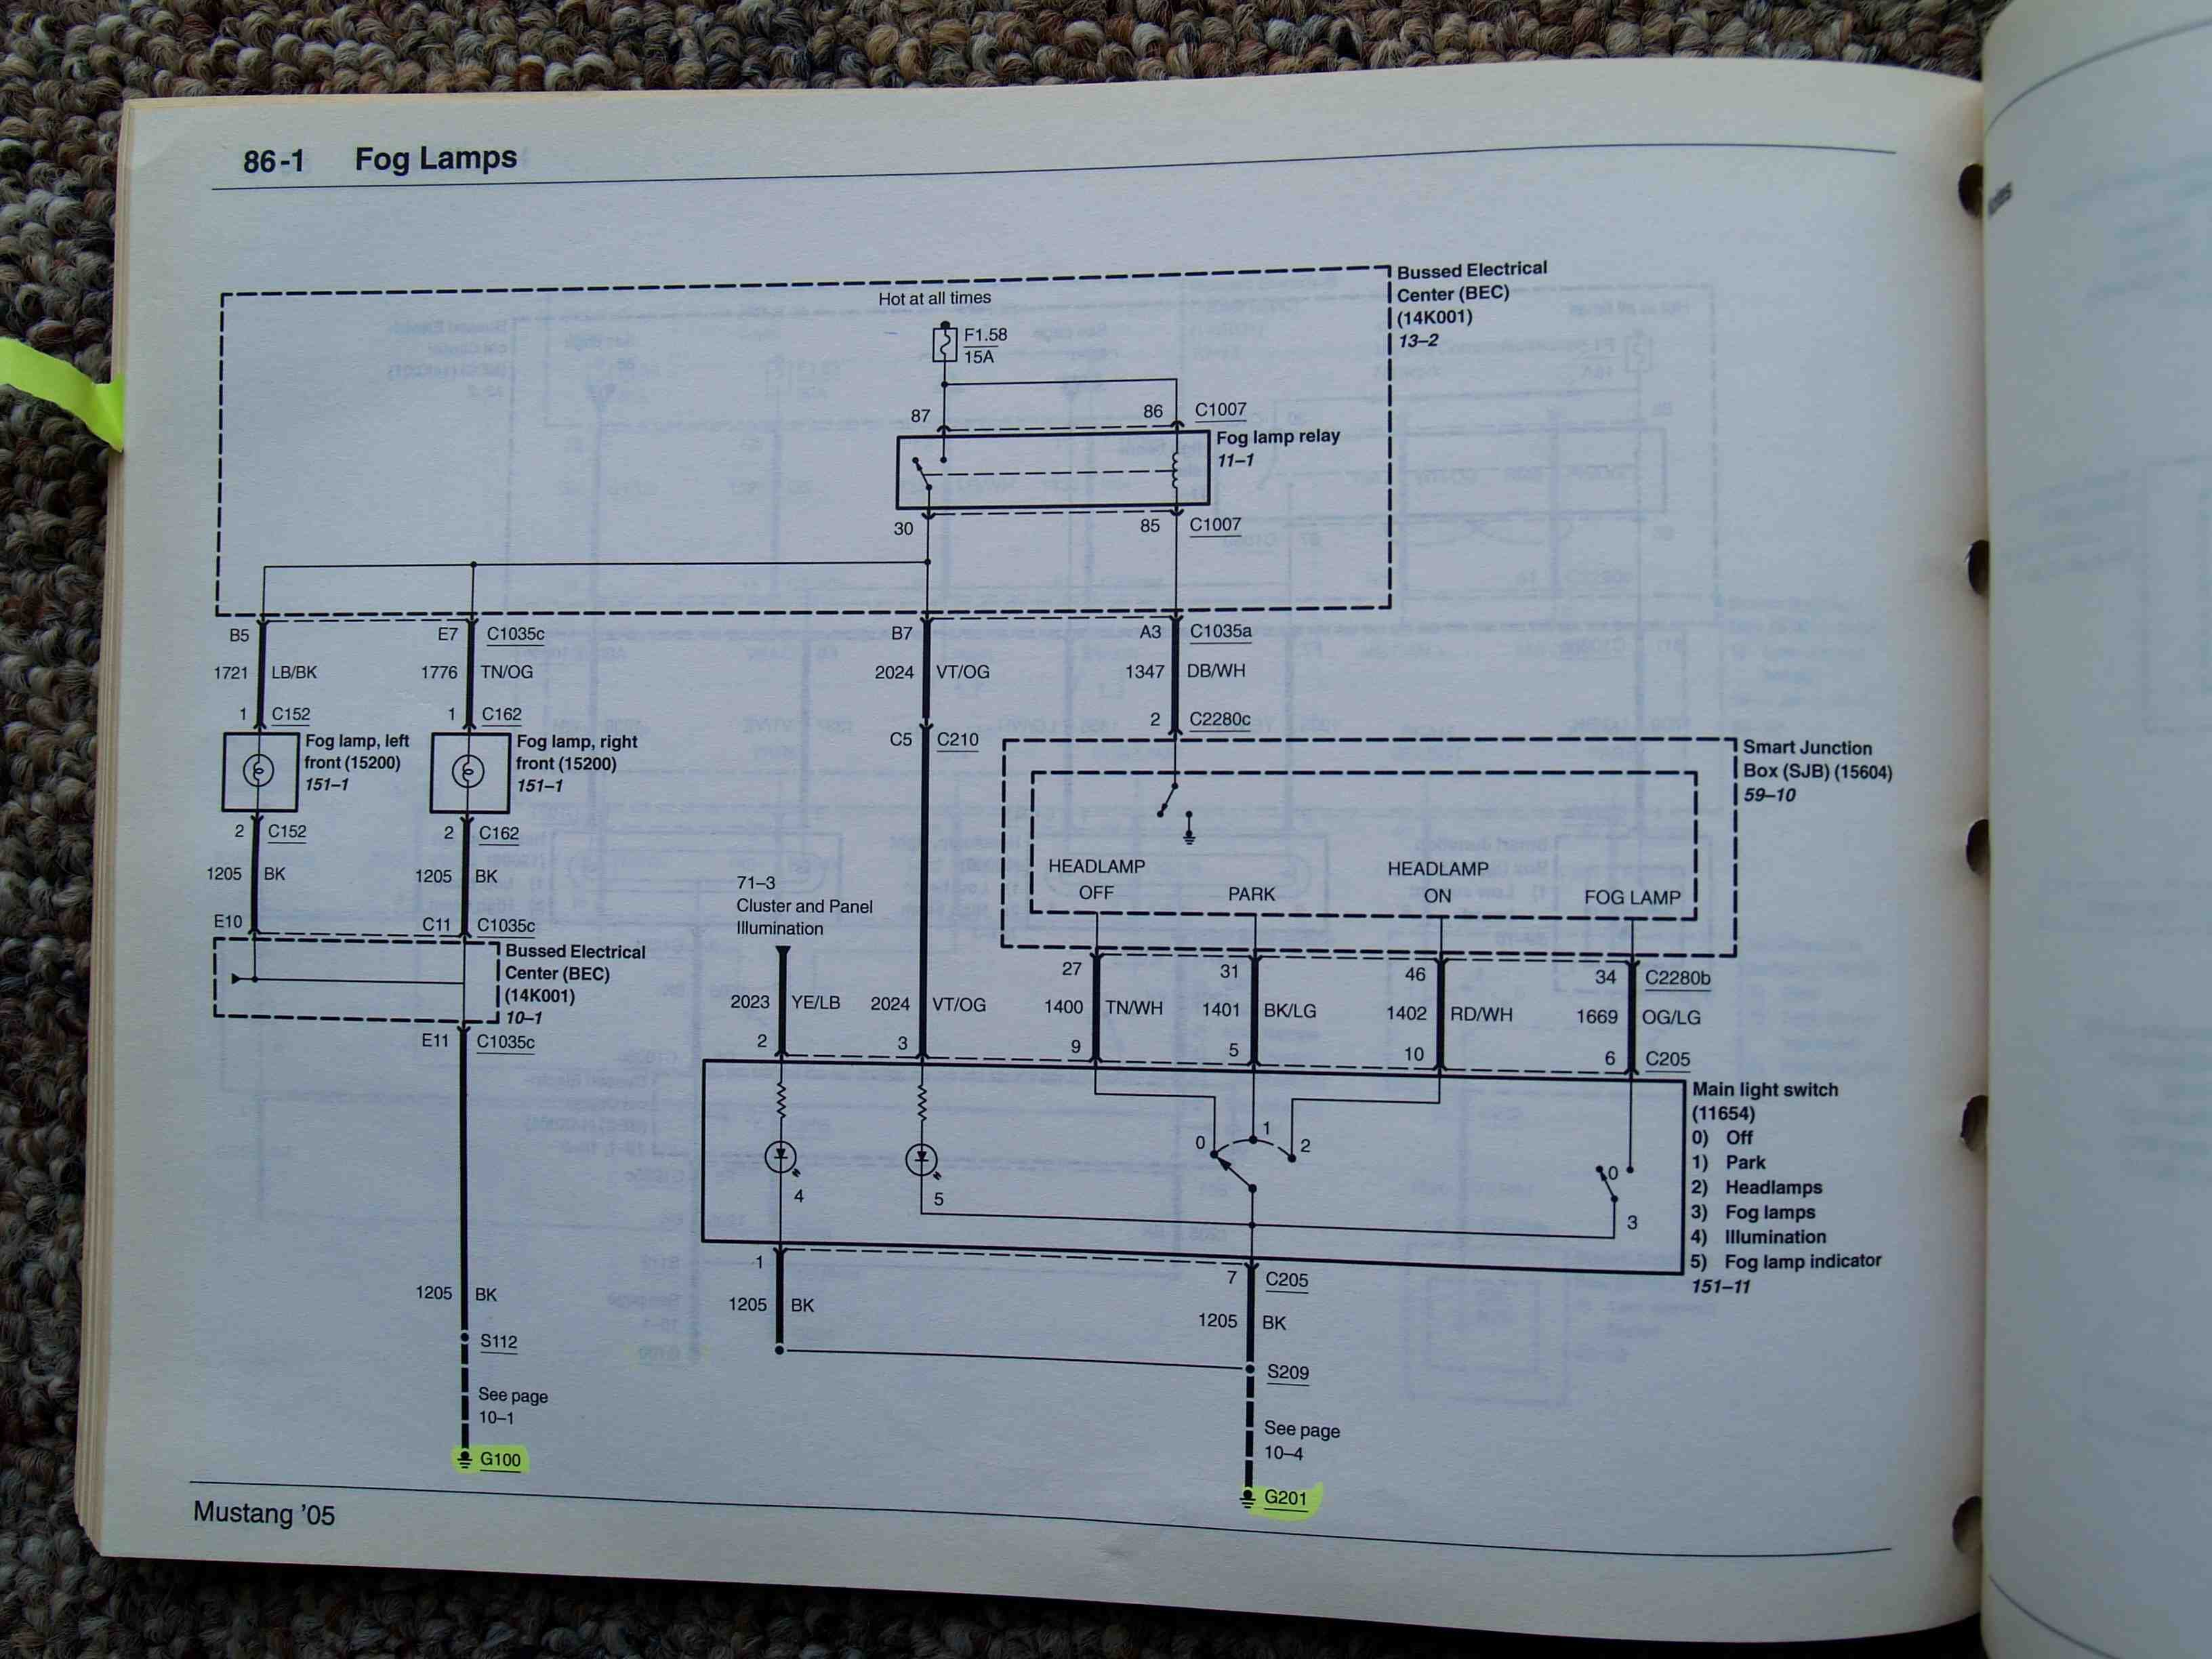 99332d1274386972 2008 gt headlight wiring diagram p5206405 3 s197 wiring diagram s175 wiring diagram \u2022 wiring diagrams j aprilaire wiring diagrams for 8466 thermostat at creativeand.co